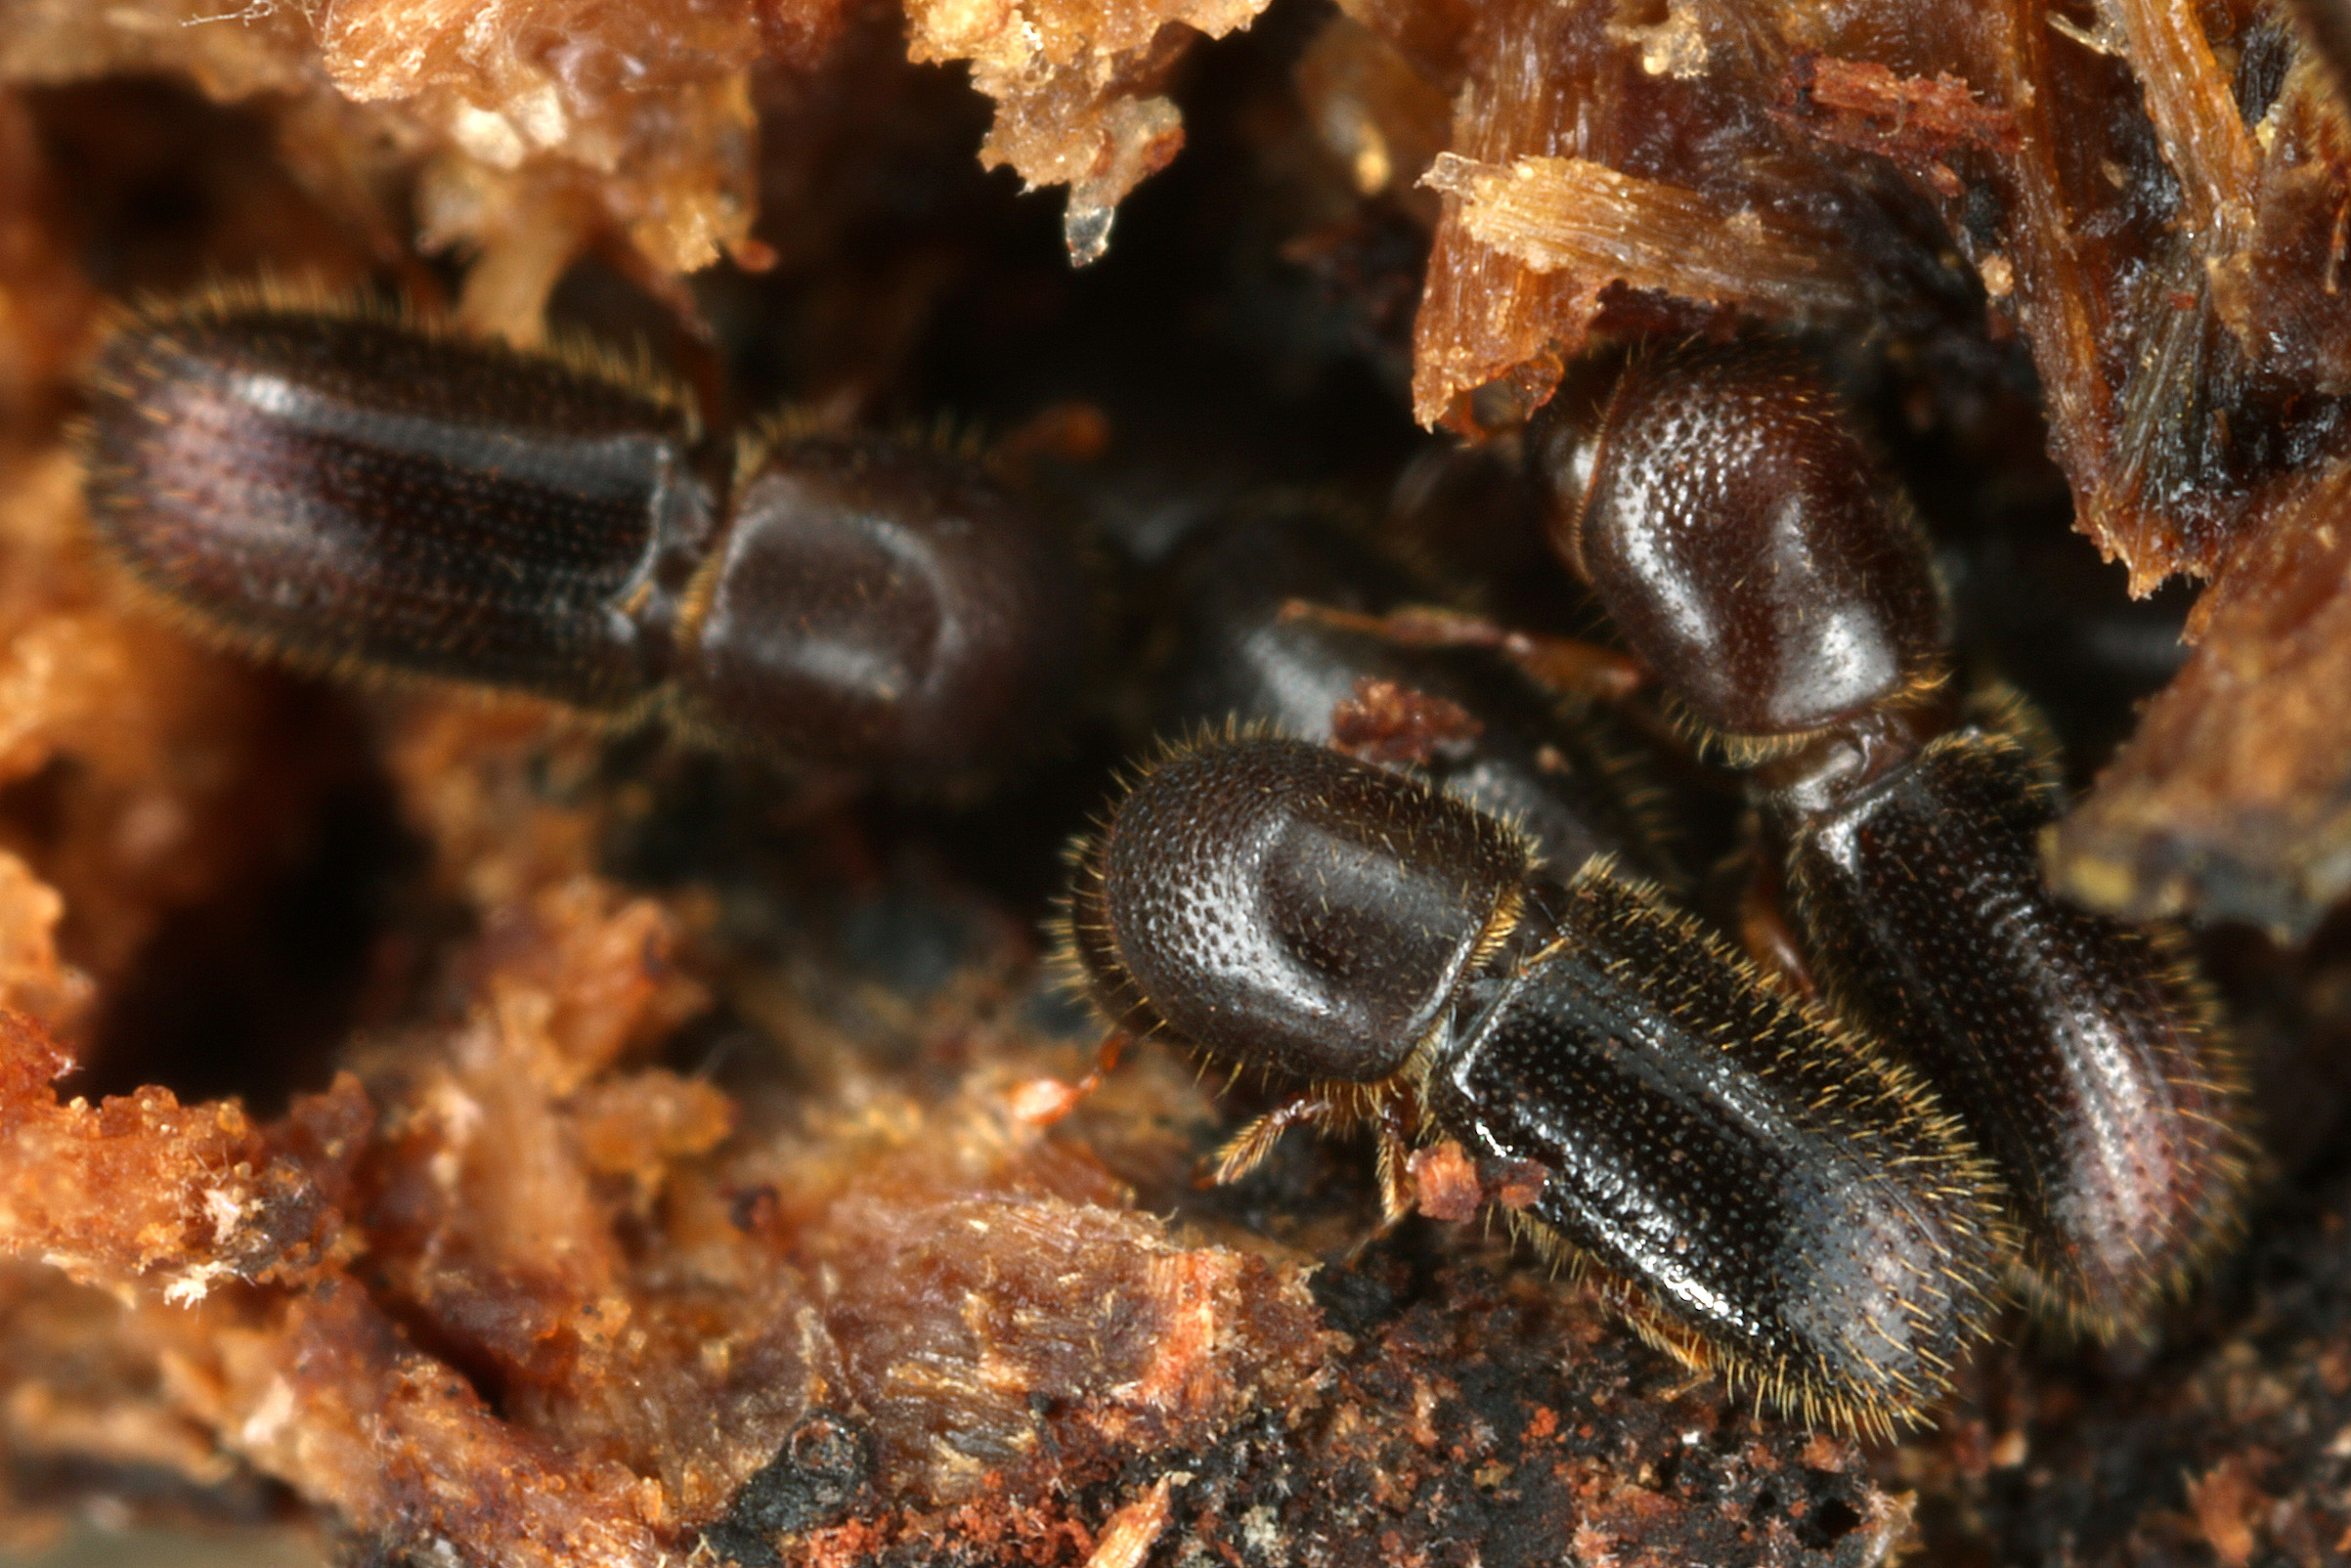 Researchers have learned why alcohol attracts certain beetles and the important symbiotic relationships these beetles have to their fungi crops and habitat.